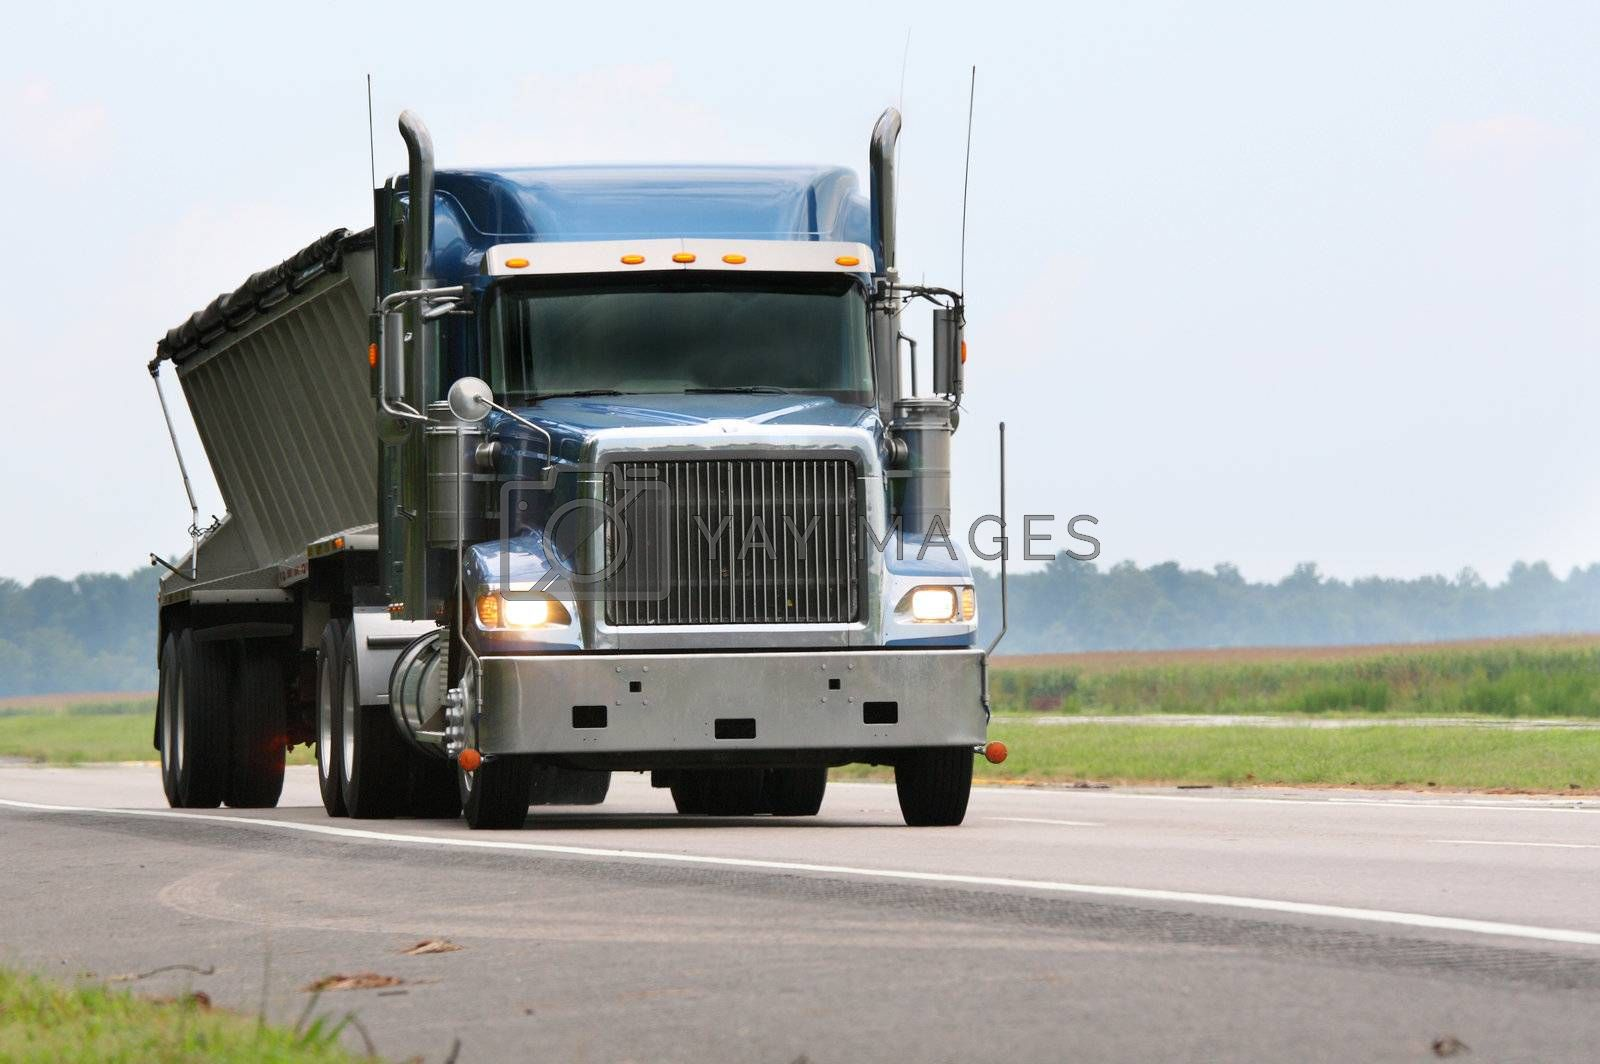 Royalty free image of blue cargo truck by gjdisplay